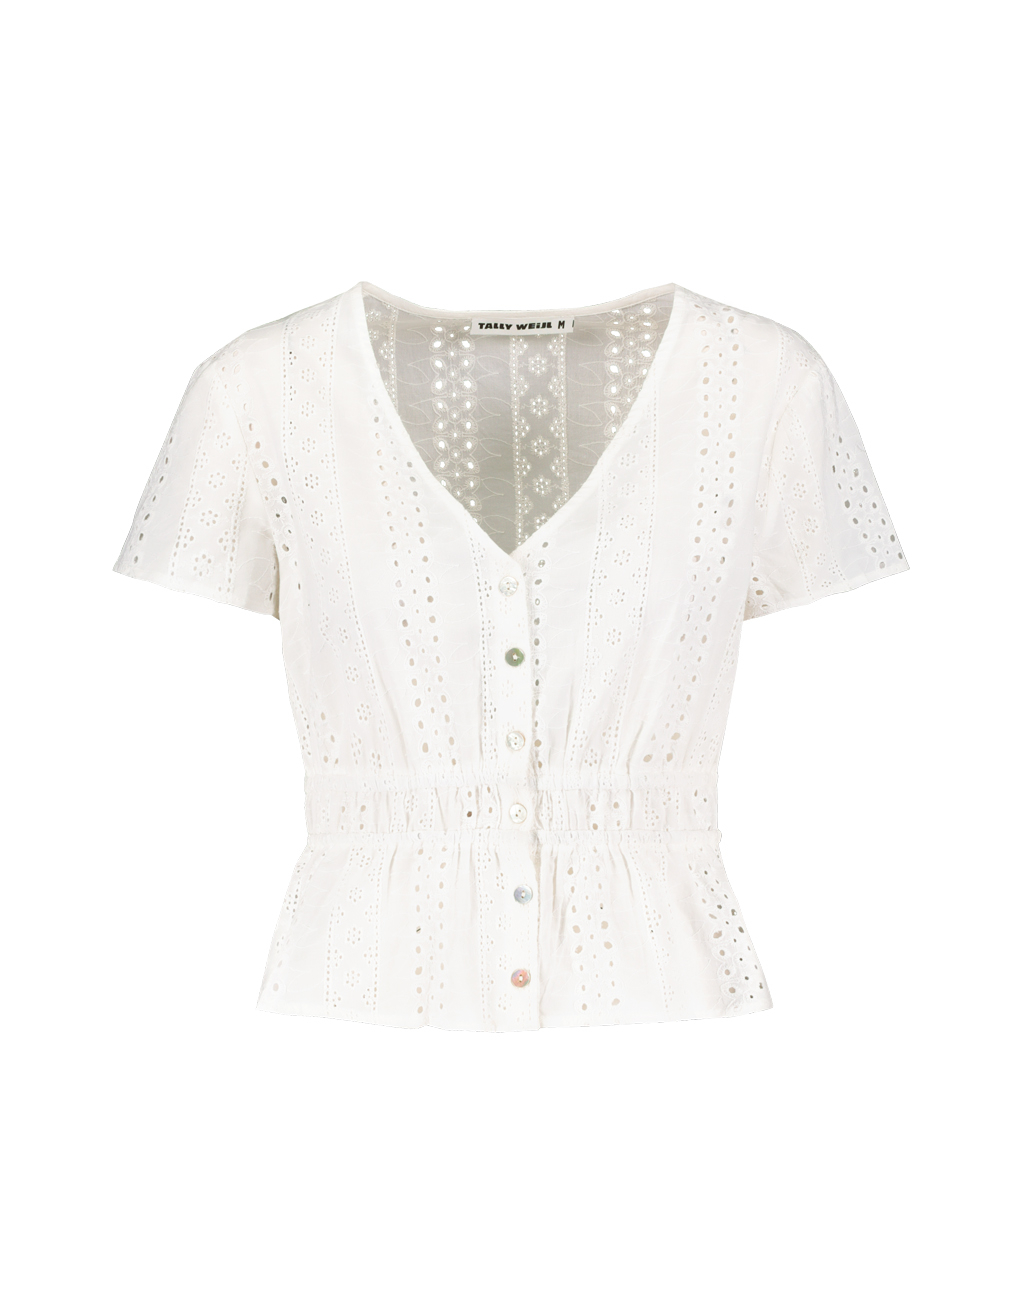 Top Blanc en Broderie Anglaise